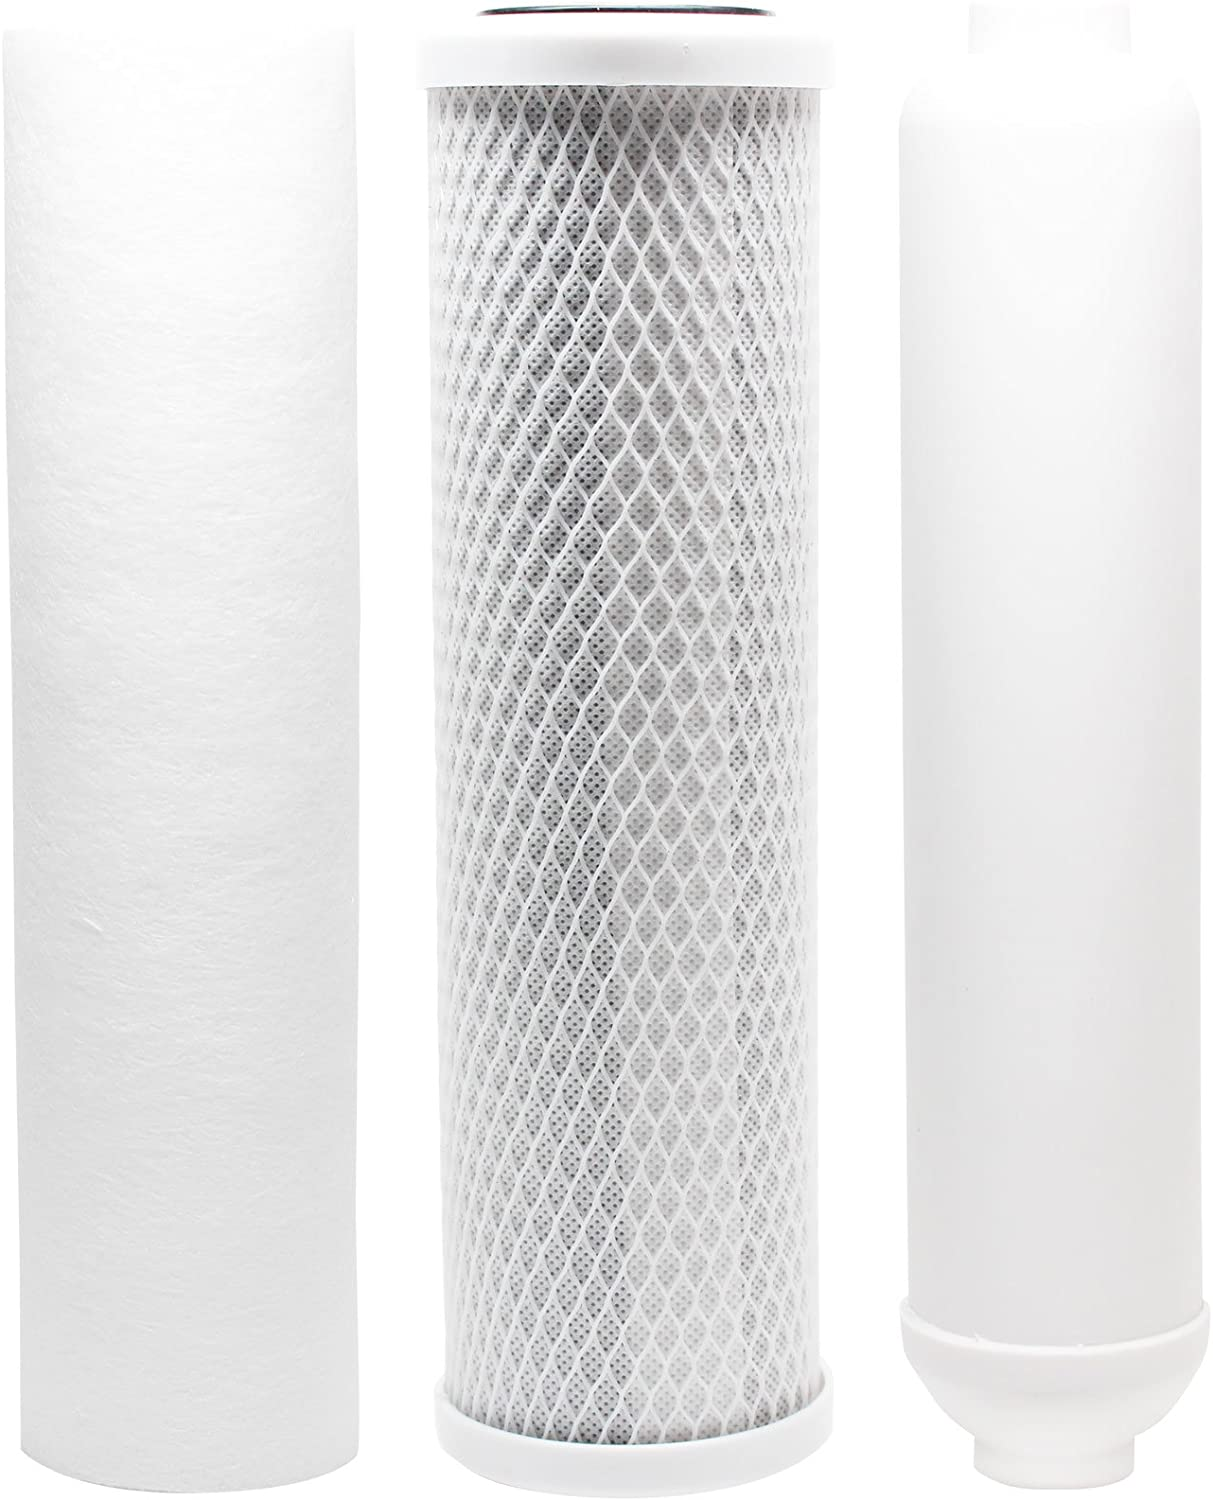 Replacement Filter Kit Compatible with Watts RO-TFM-4SV RO System Denali Pure Brand Includes Carbon Block Filter PP Sediment Filter /& Inline Filter Cartridge